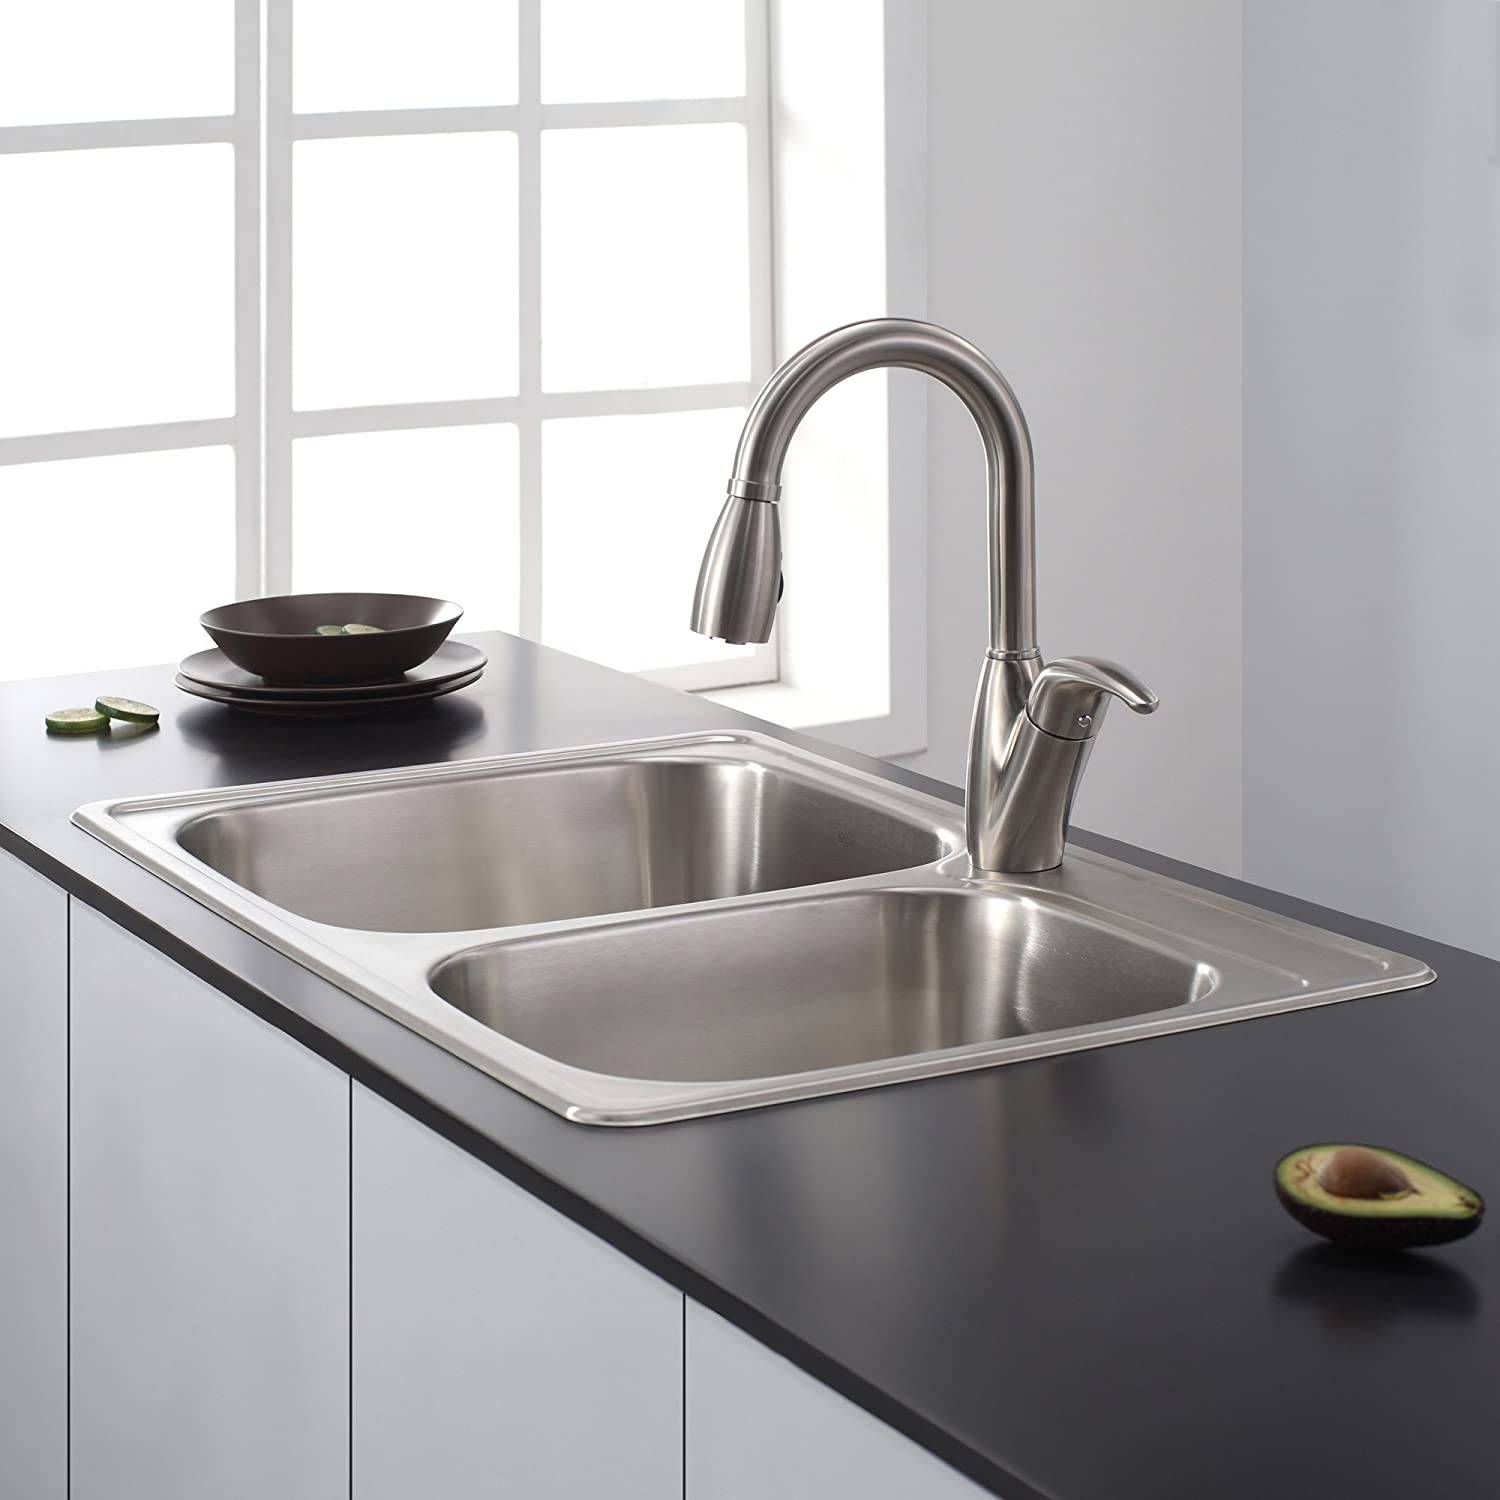 Top Kitchen Sinks Kraus ktm32 33 inch topmount 6040 double bowl 18 gauge stainless kraus ktm32 33 inch topmount 6040 double bowl 18 gauge stainless steel kitchen sink amazon workwithnaturefo